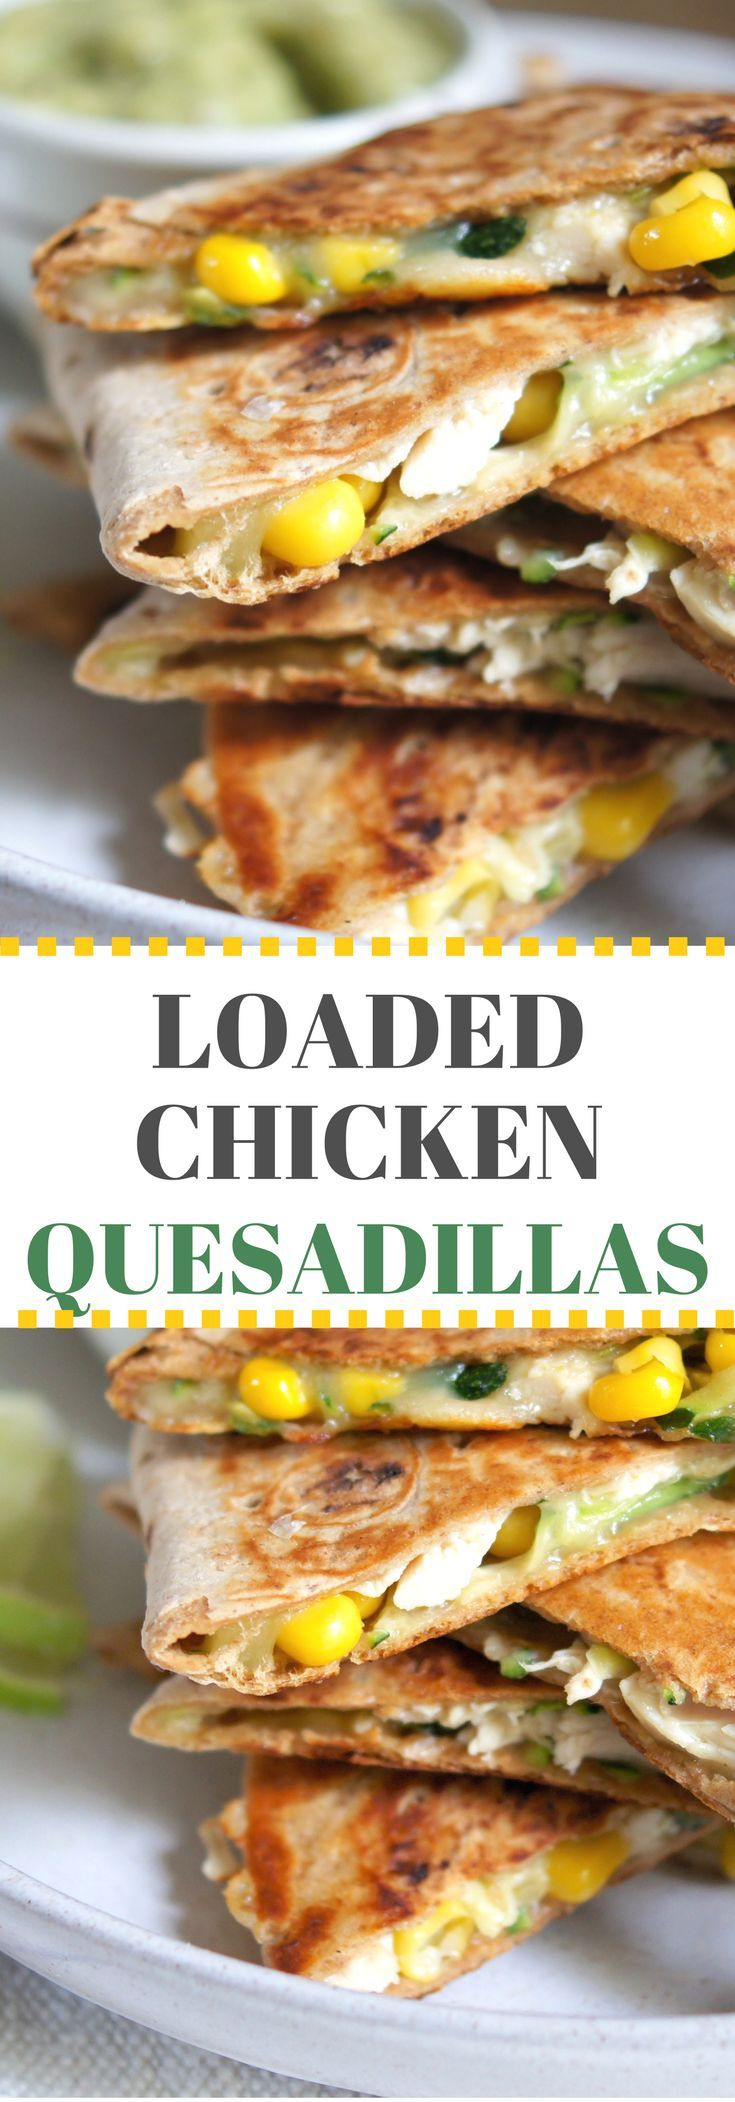 Healthy chicken and vegetable quesadillas with a creamy avocado salsa for dunking. Kid-friendly, parent-approved. #spon